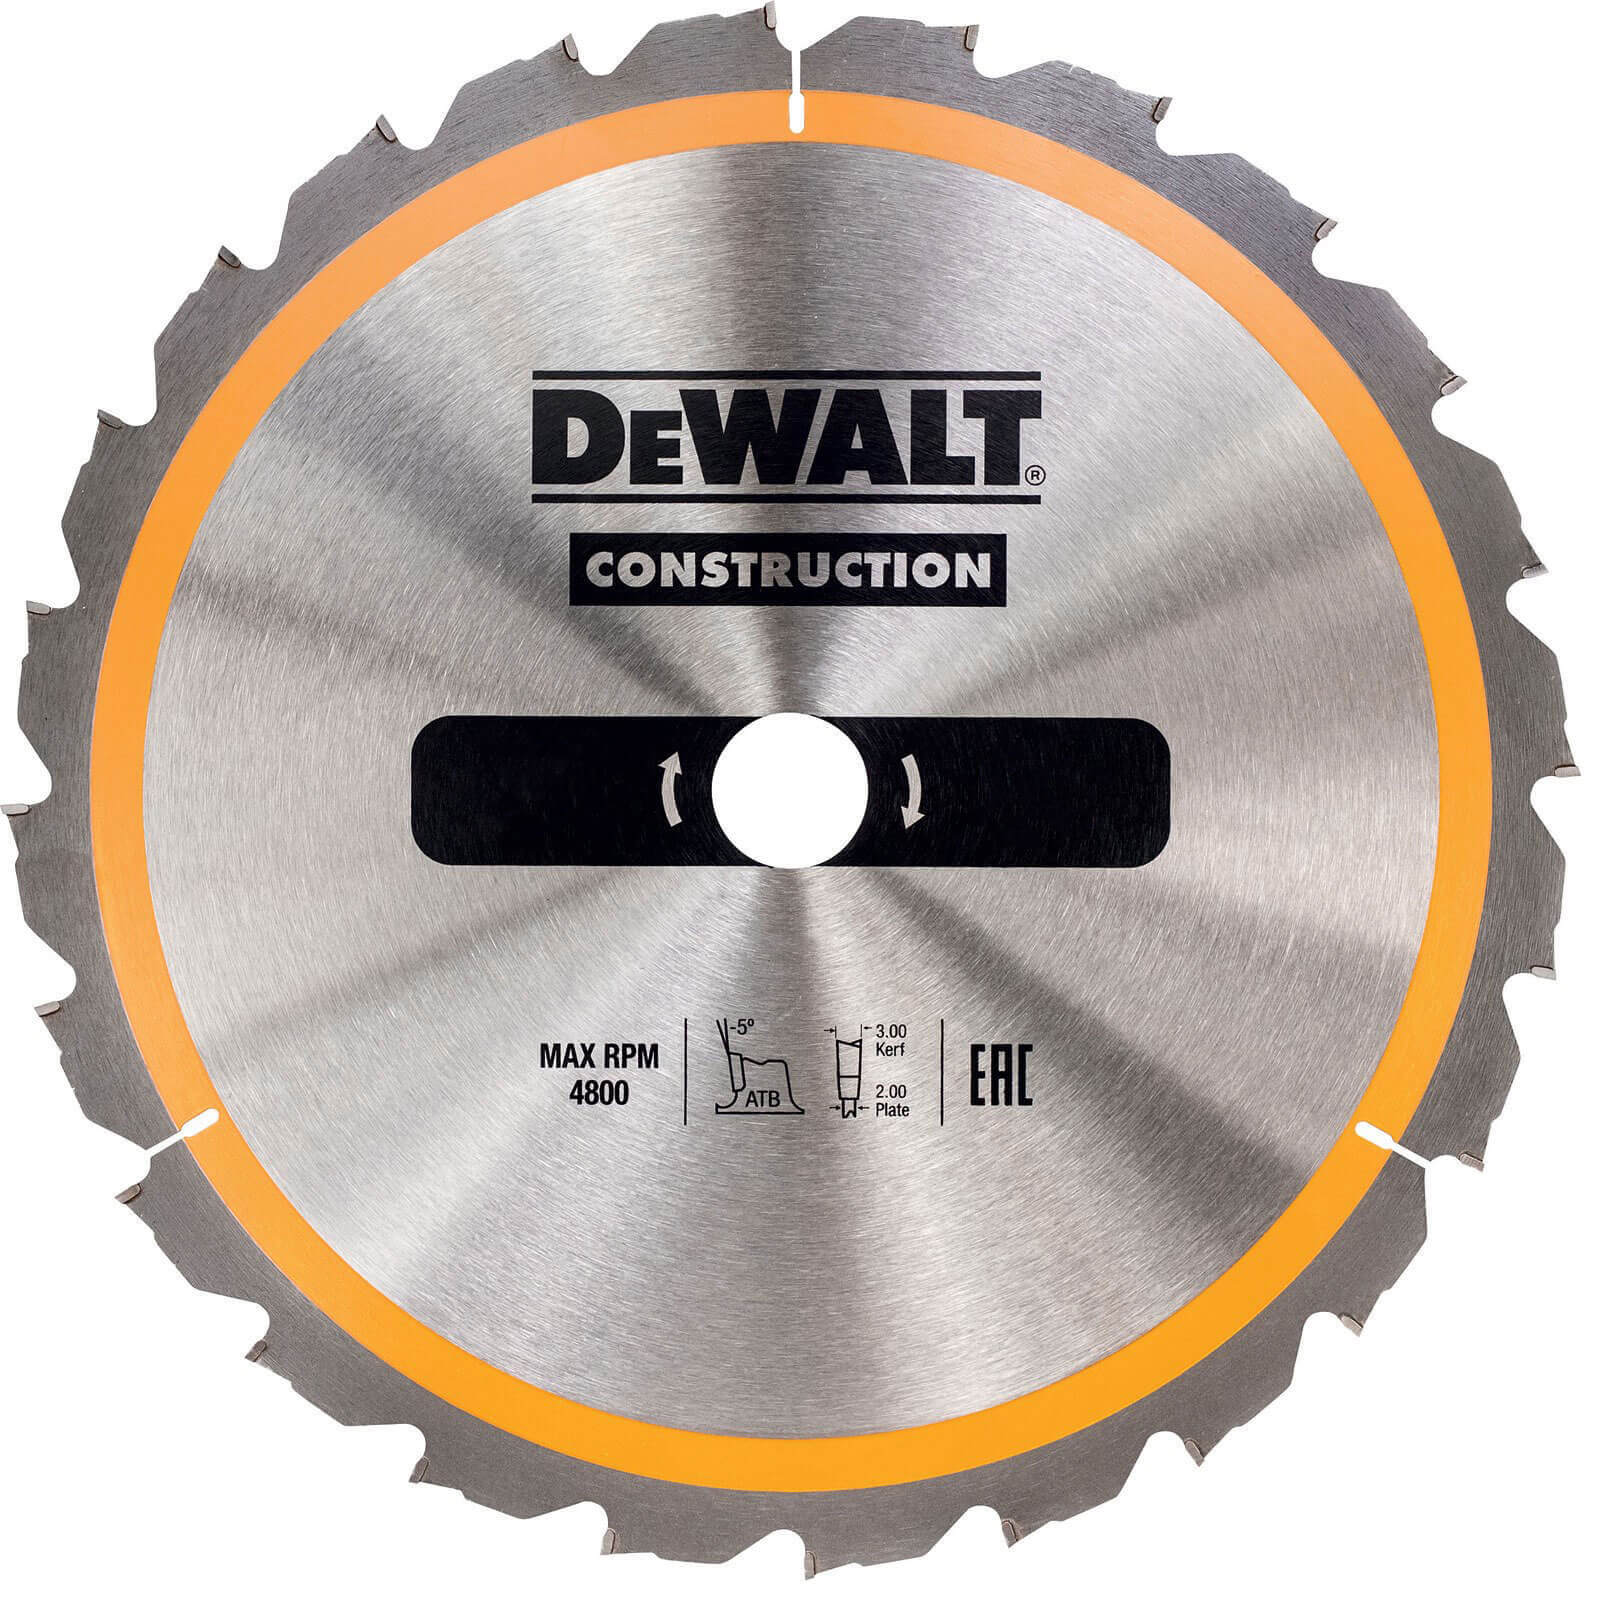 Image of DeWalt Construction Circular Saw Blade 160mm 18T 20mm